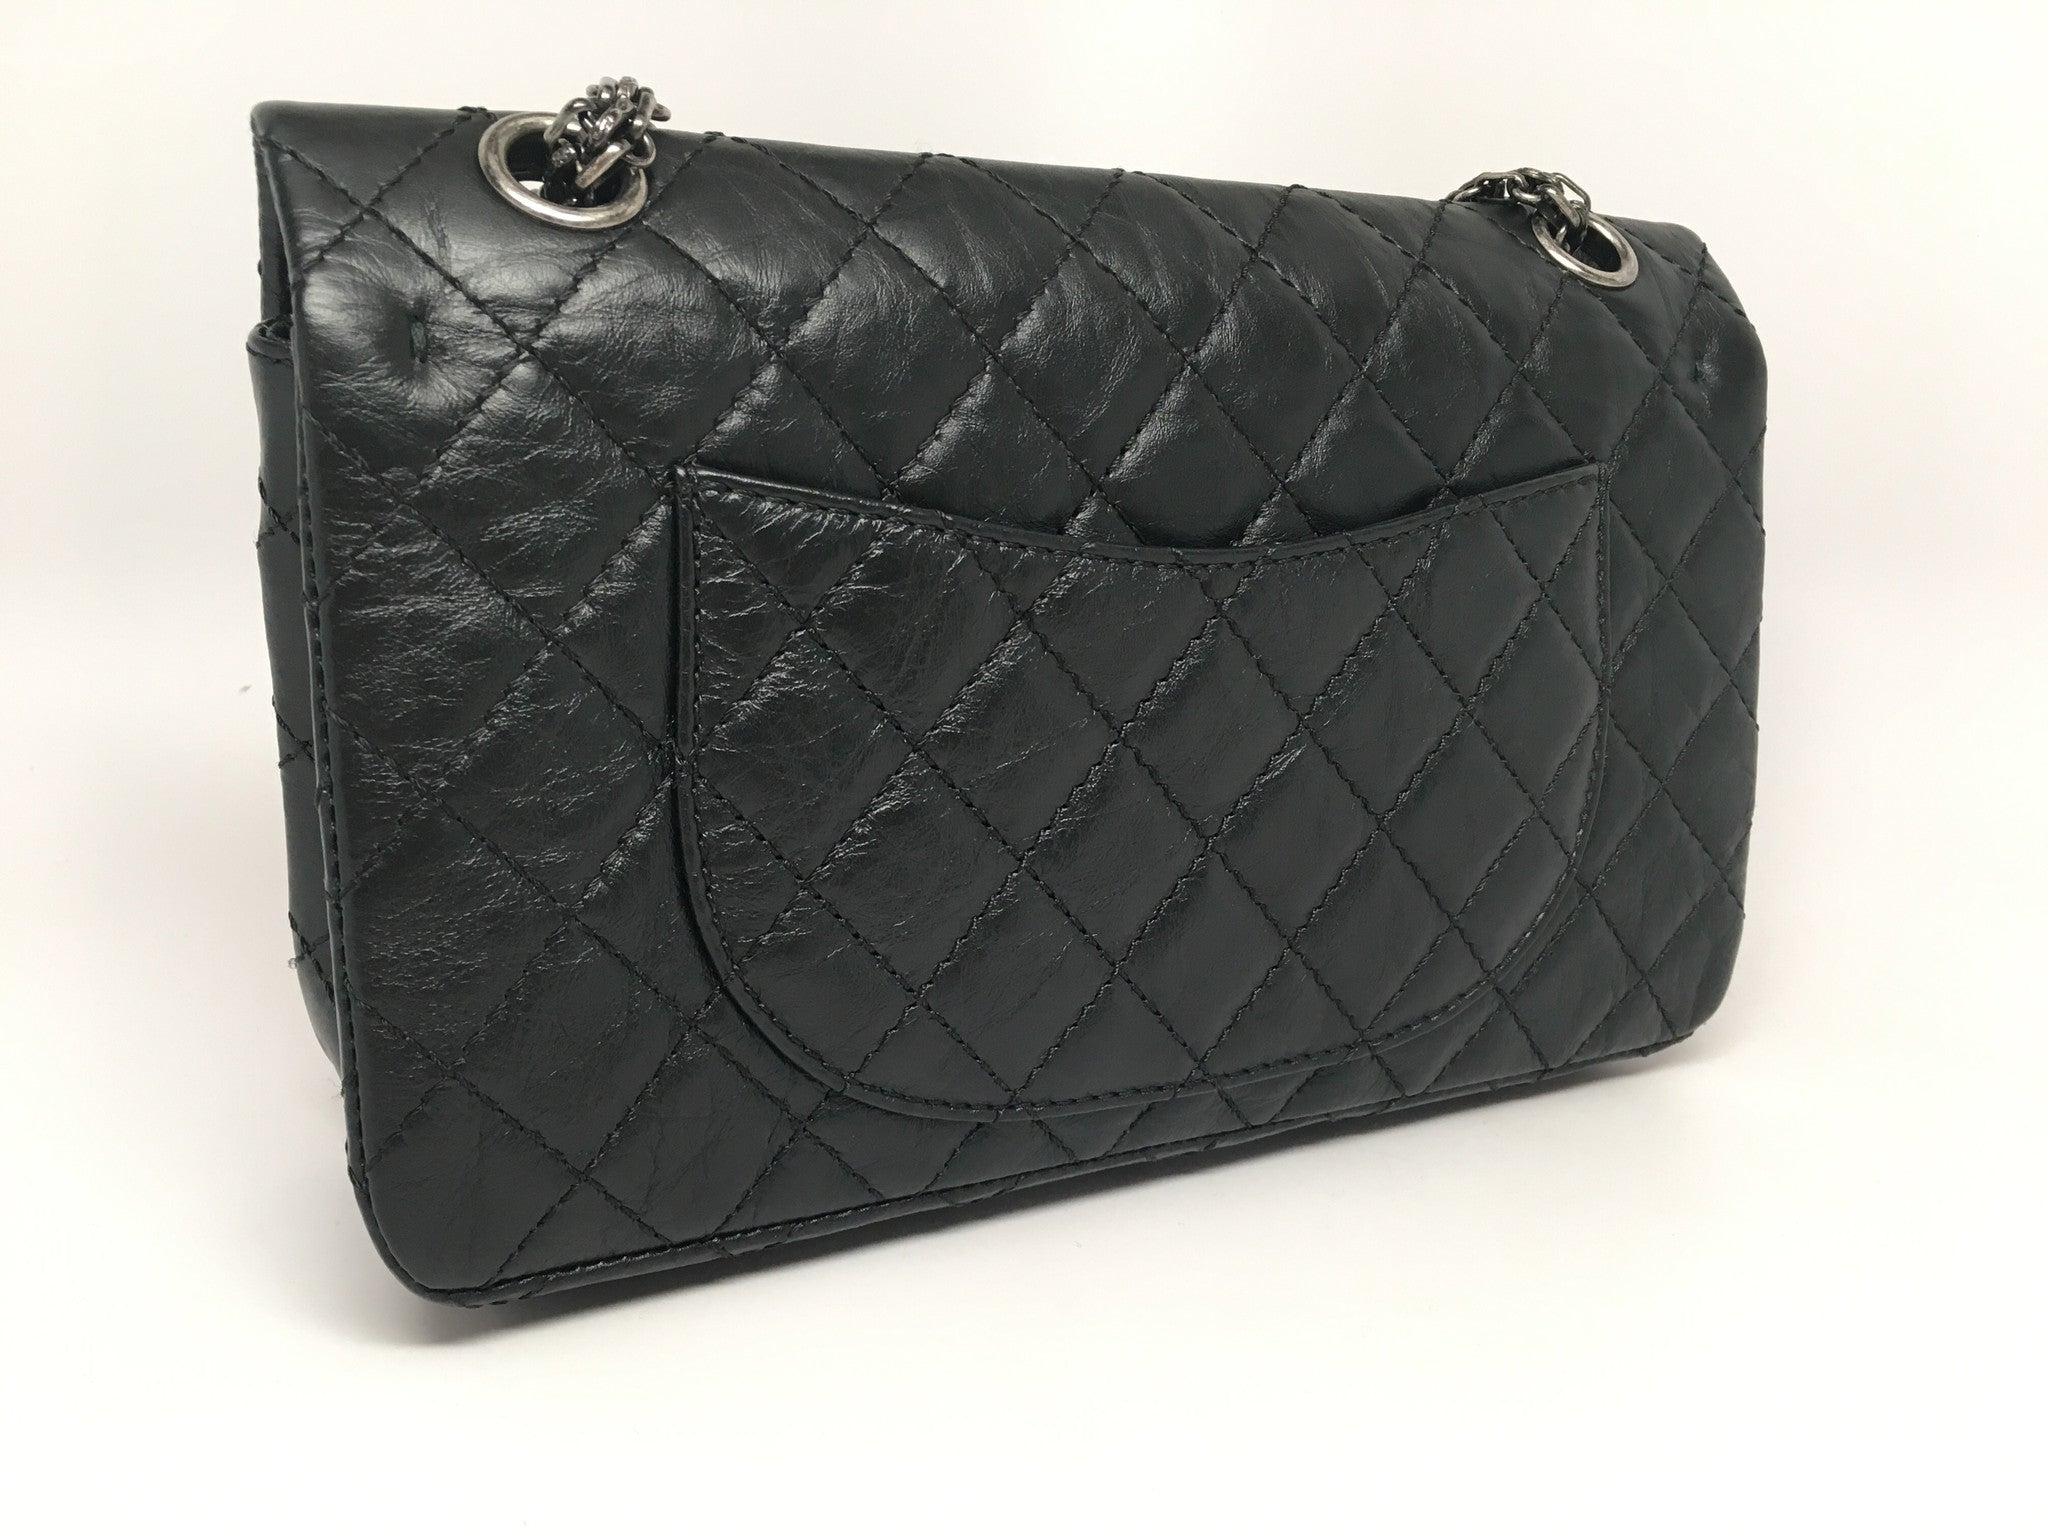 CHANEL VINTAGE LIMITED EDITION BLACK QUILTED LUCKY CHARM 2.55 FLAP BAG REISSUE